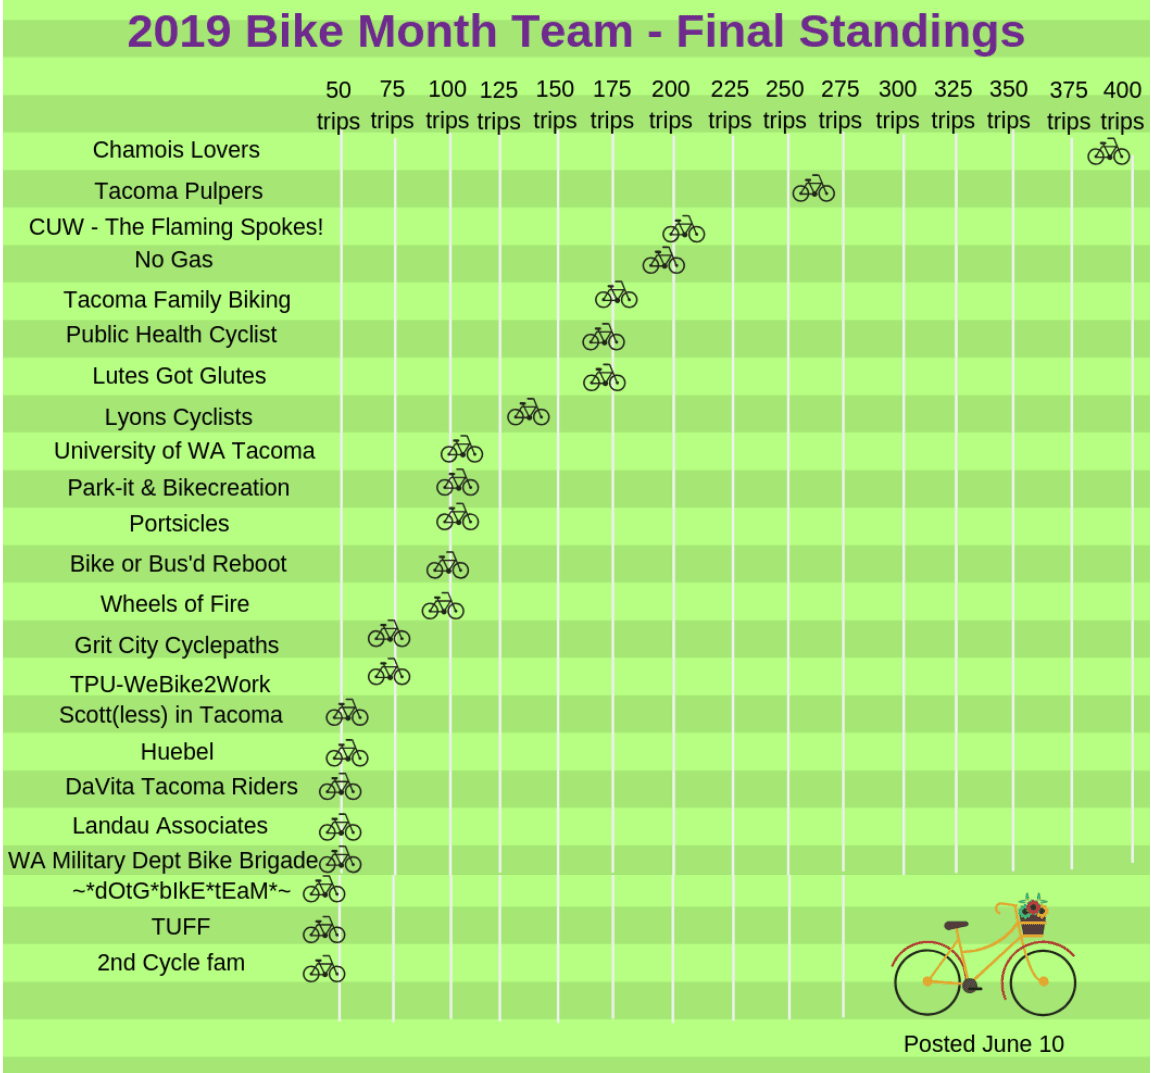 BikeMonthTeam-FinalStandings_061019